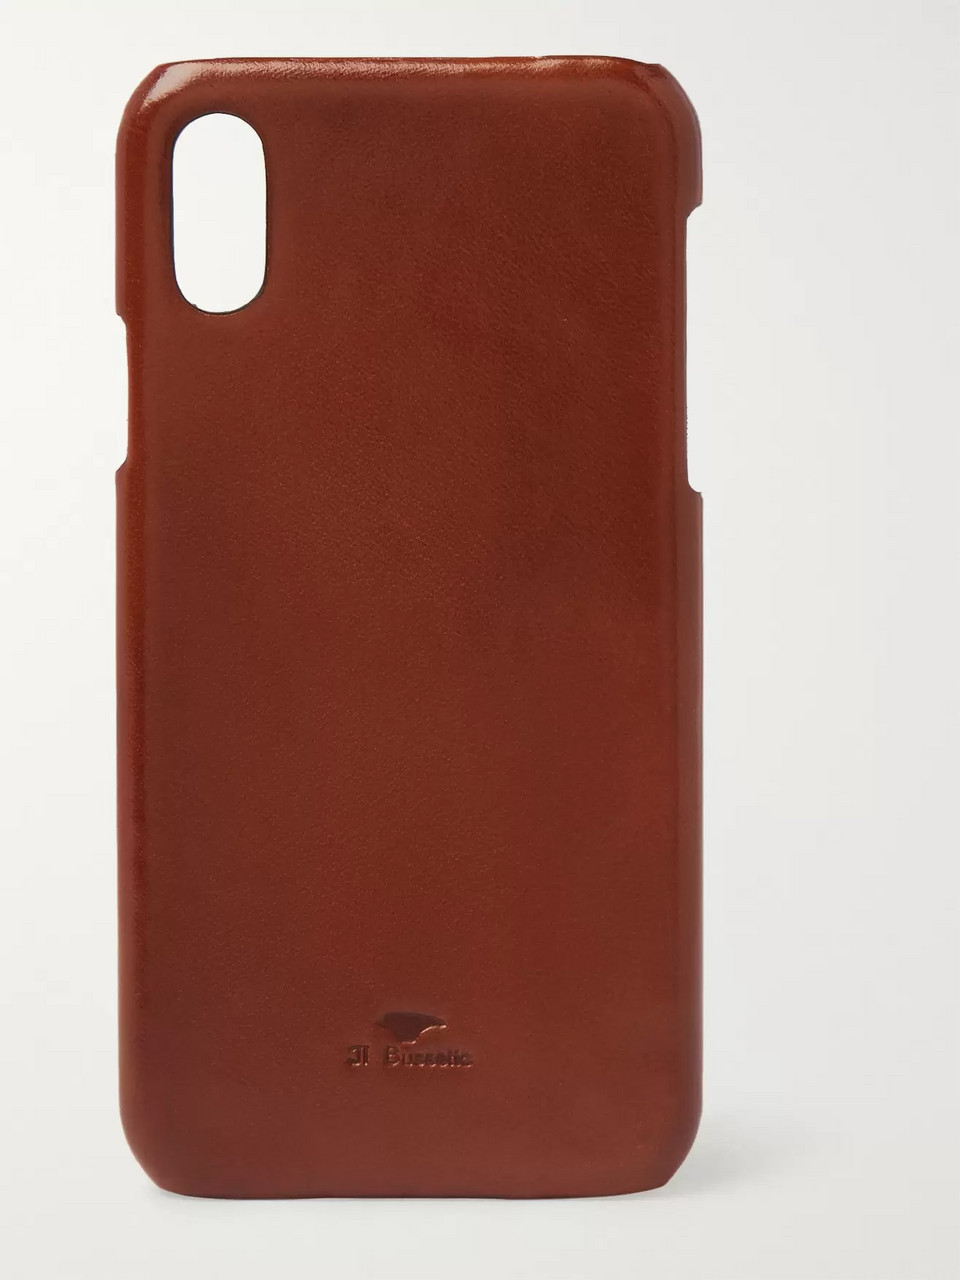 Il Bussetto Leather iPhone X Case